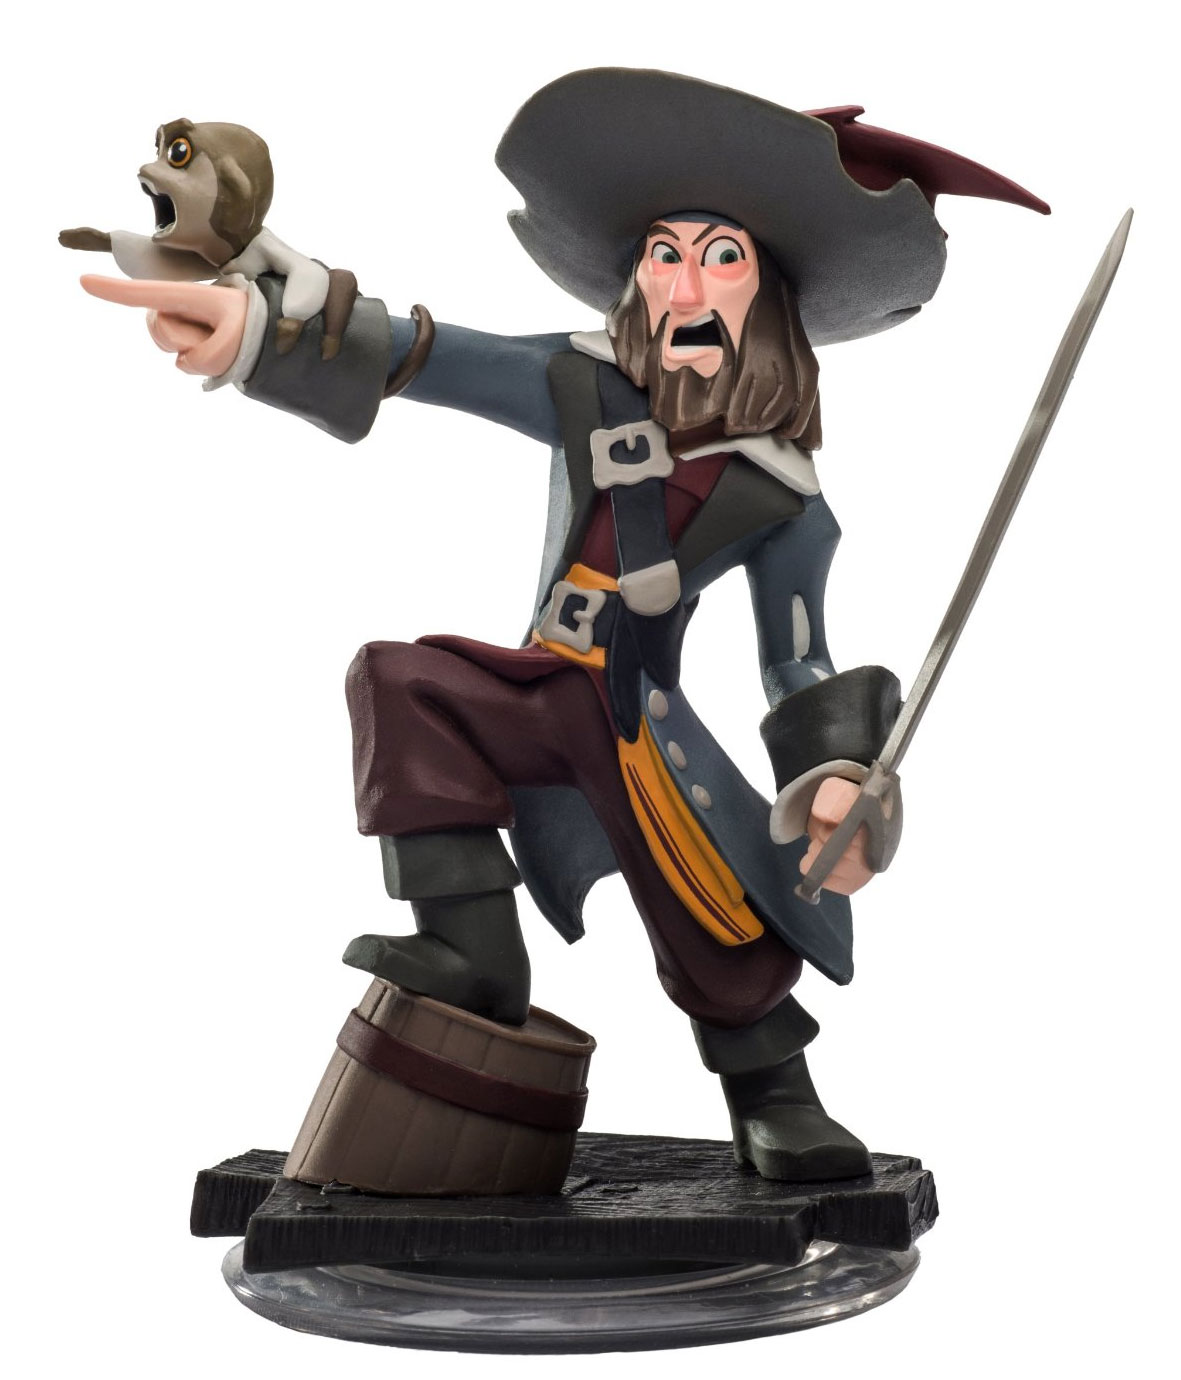 Disney Infinity Characters Wave One High-Res Toy Images Surface